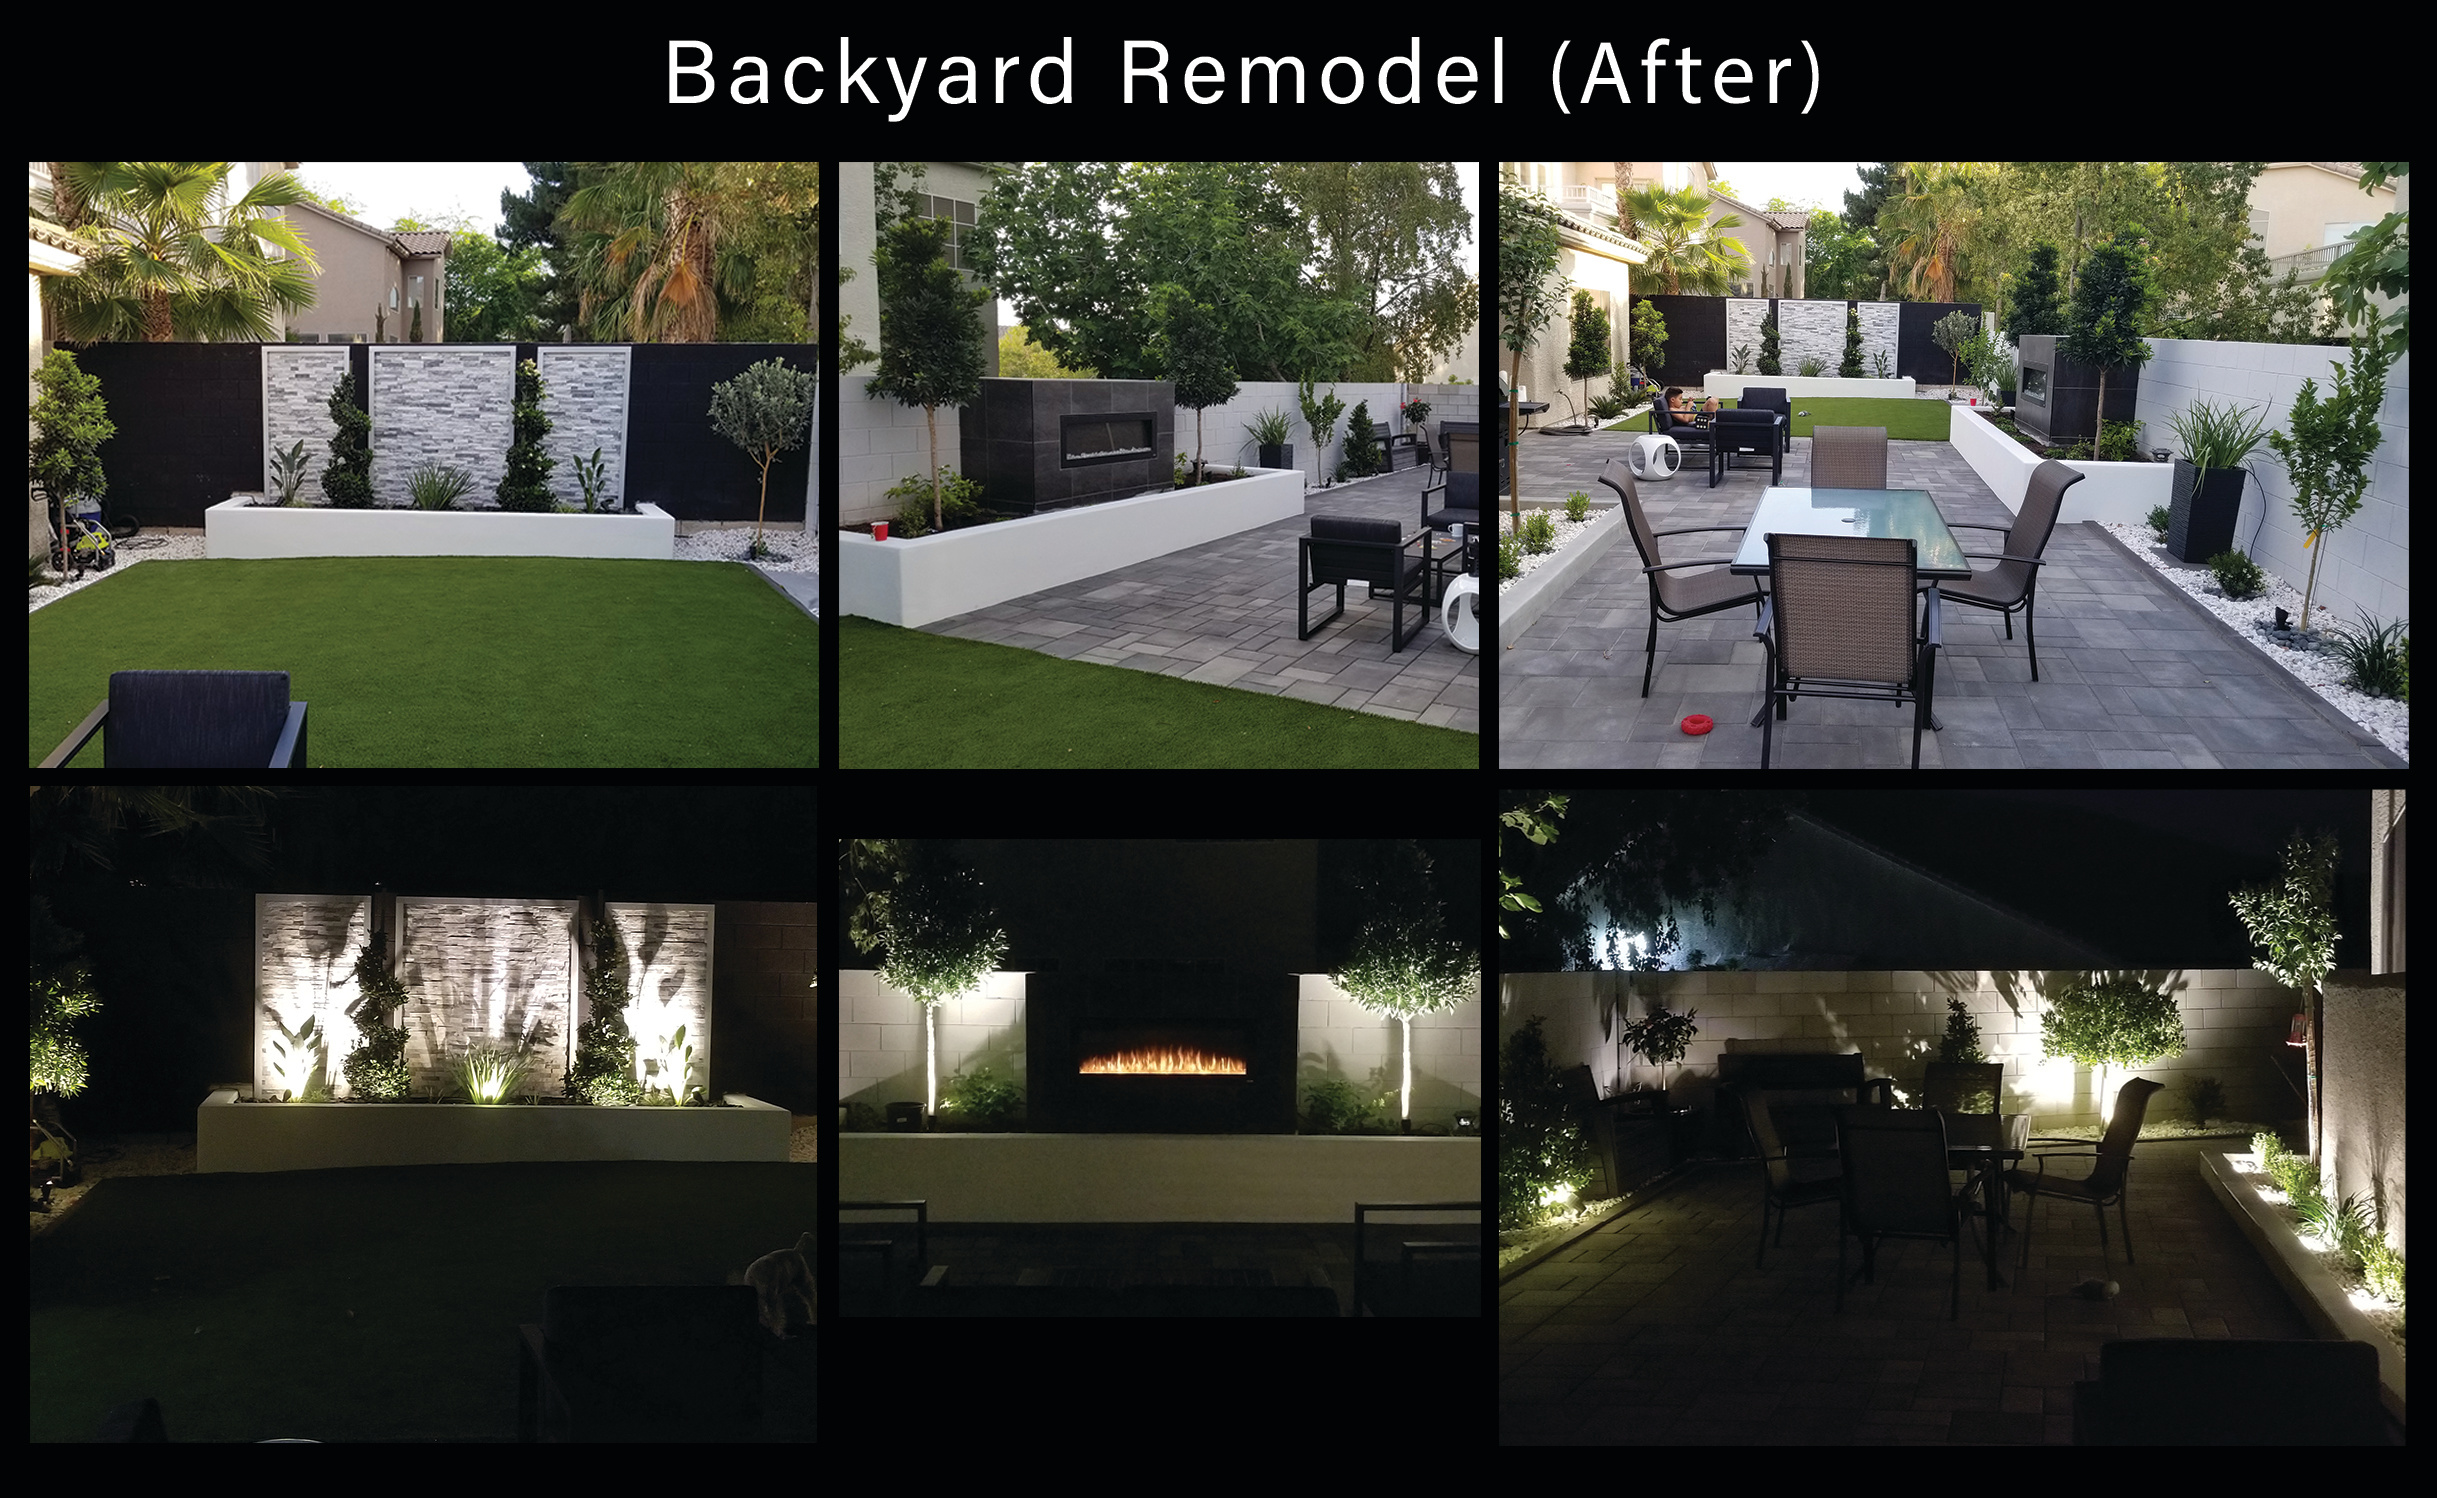 Backyard remodel After